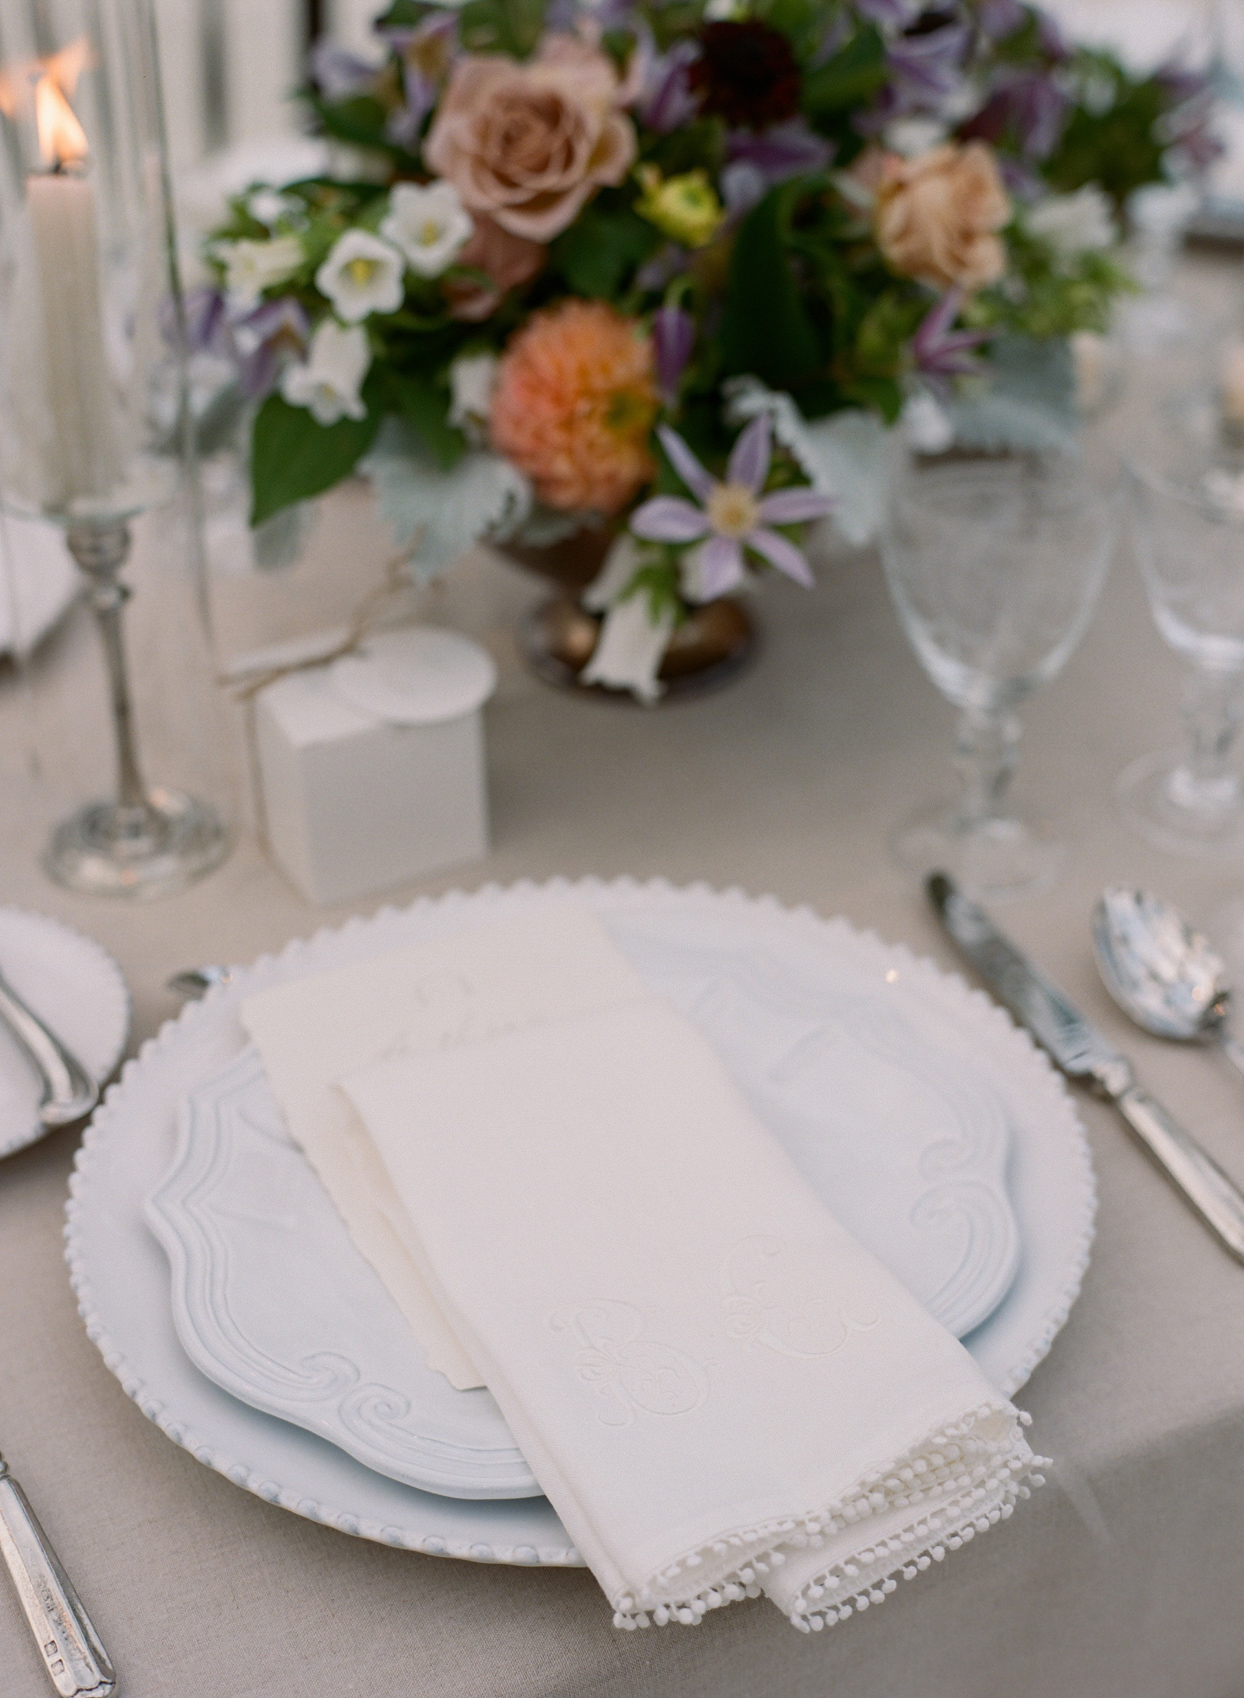 place setting with plates and napkins